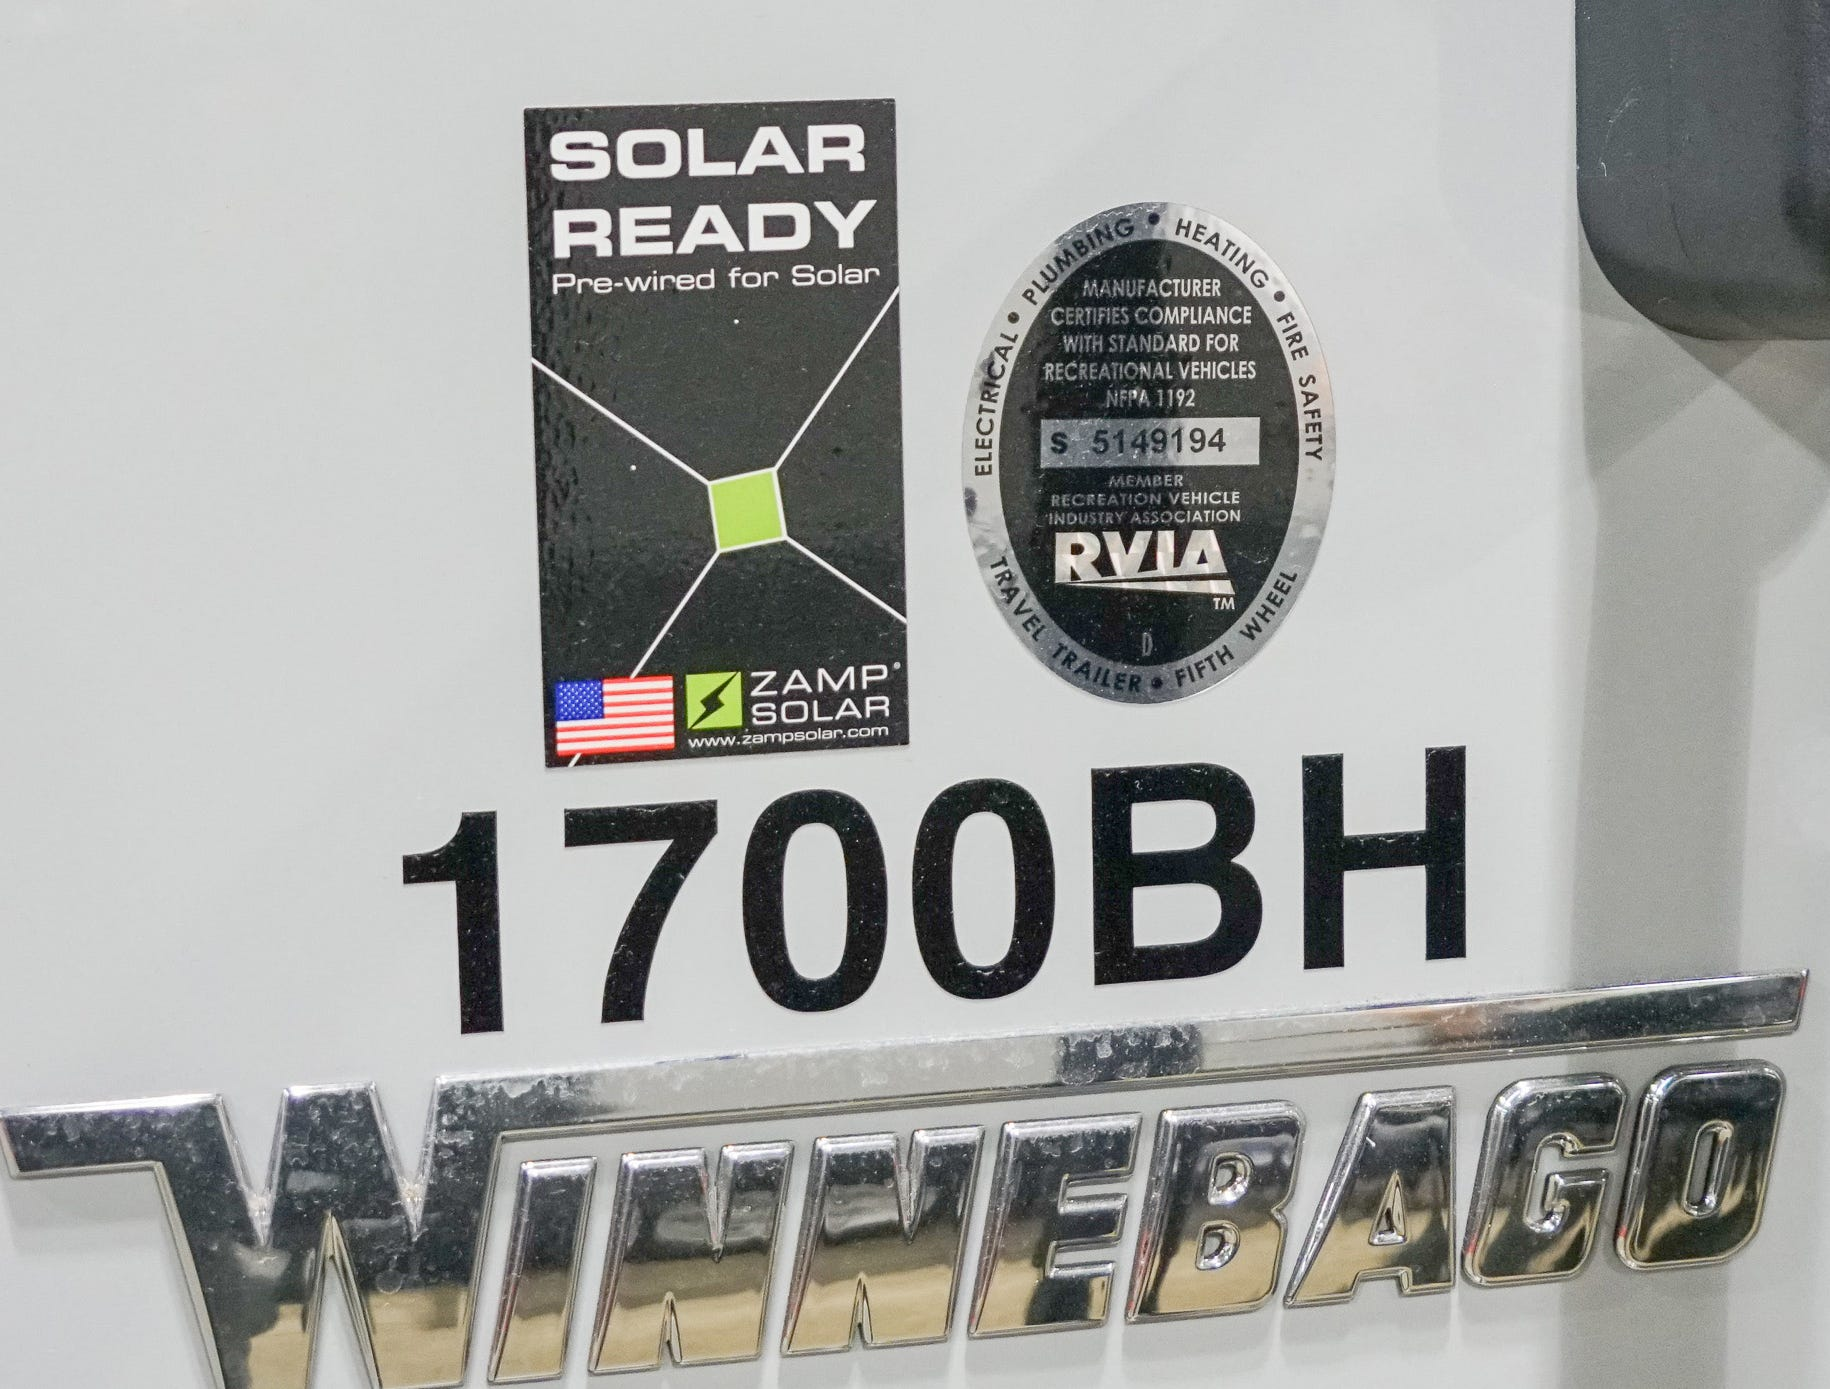 Many RVs now come pre-wired for solar panels.